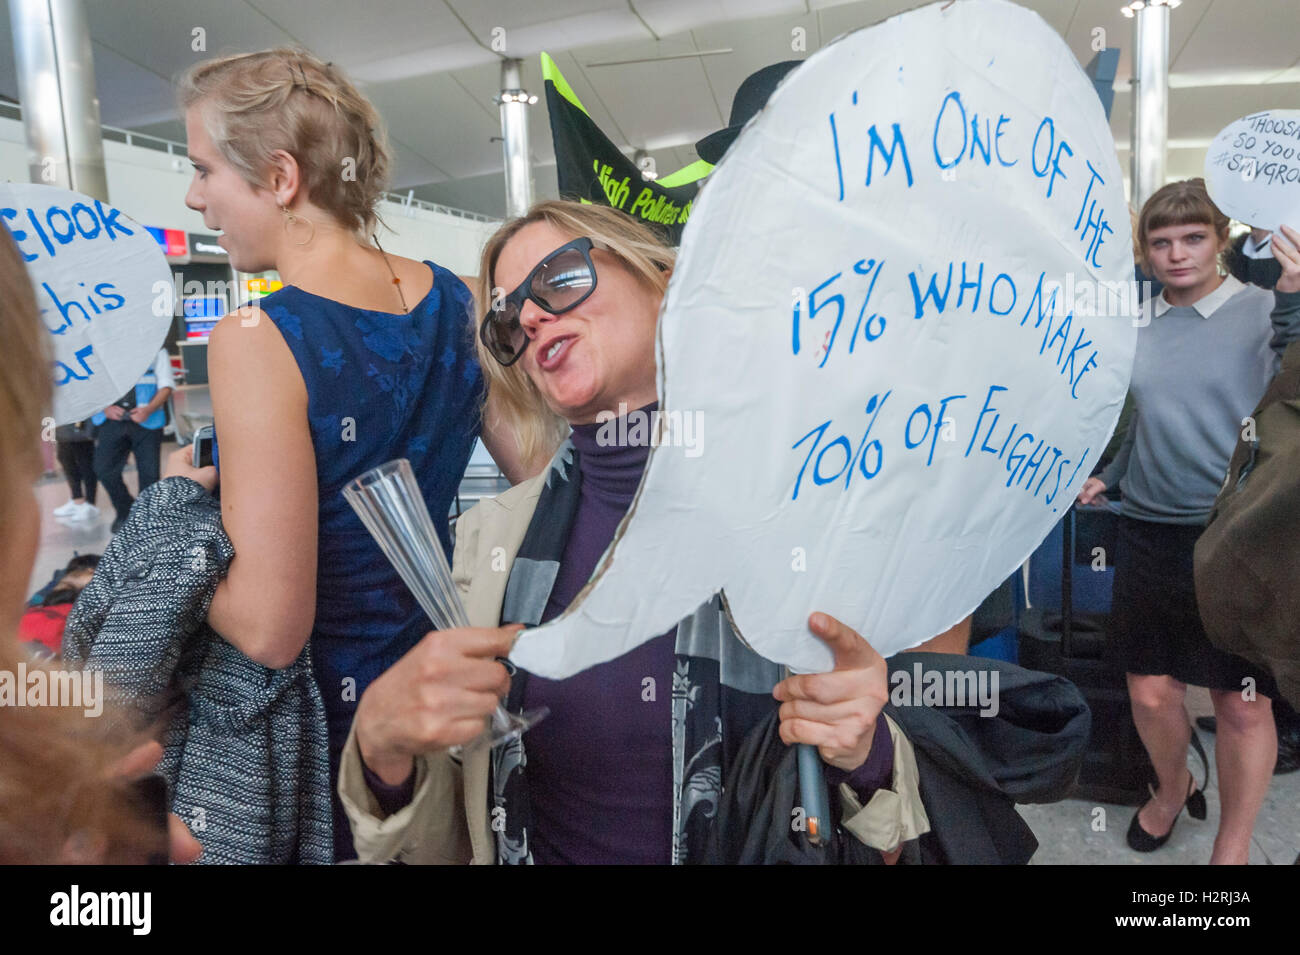 Heathrow, London, UK. 1st October 2016. As part of a global wave of resistance to airport expansion on environmental - Stock Image